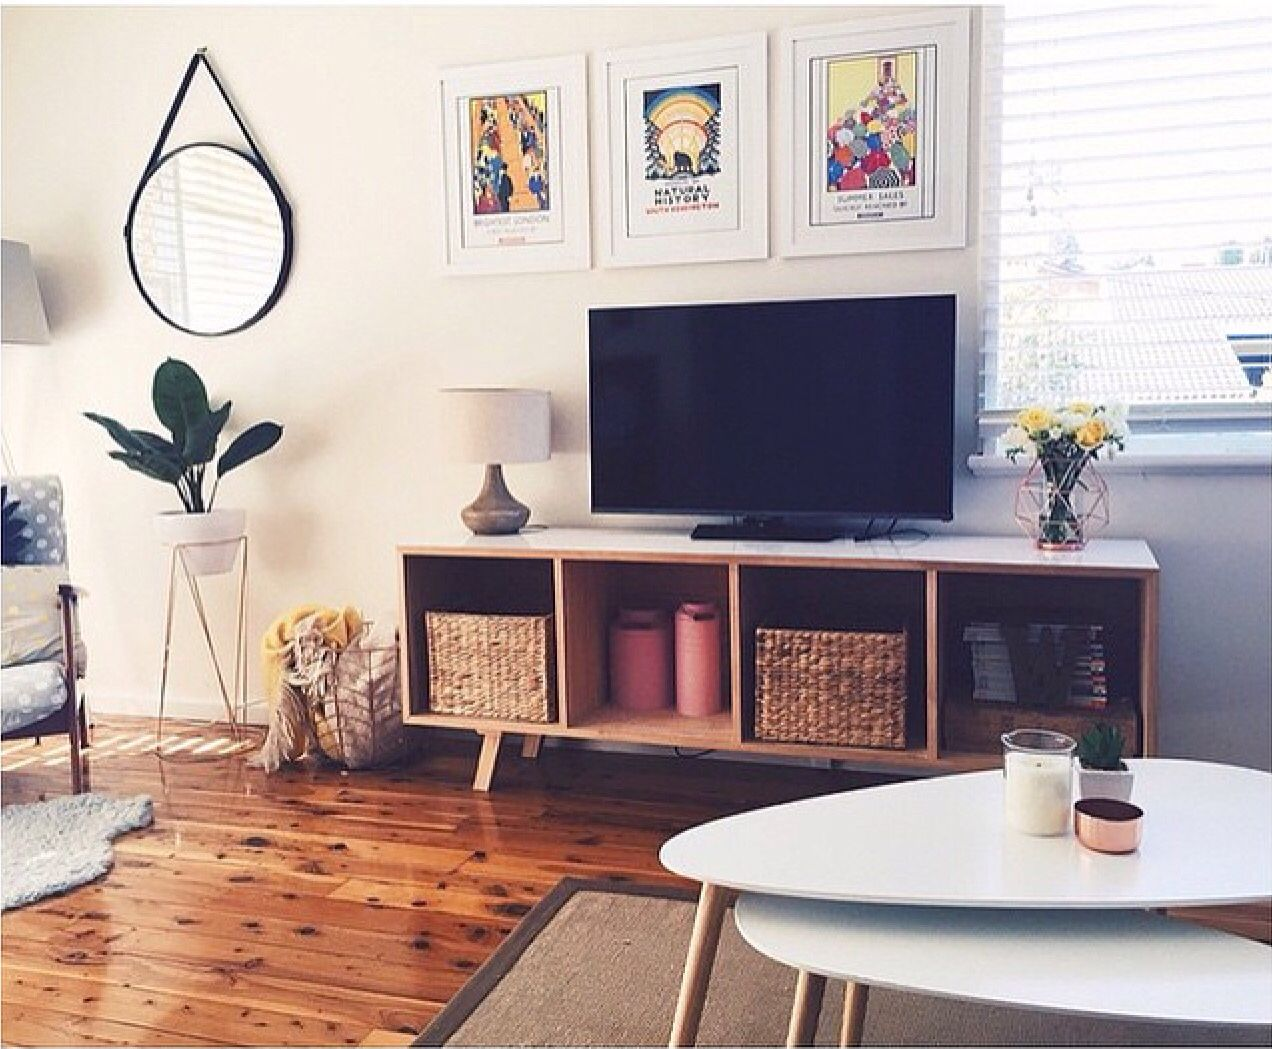 Home Decor Kmart Copper Scandi Home Placementstyling Home